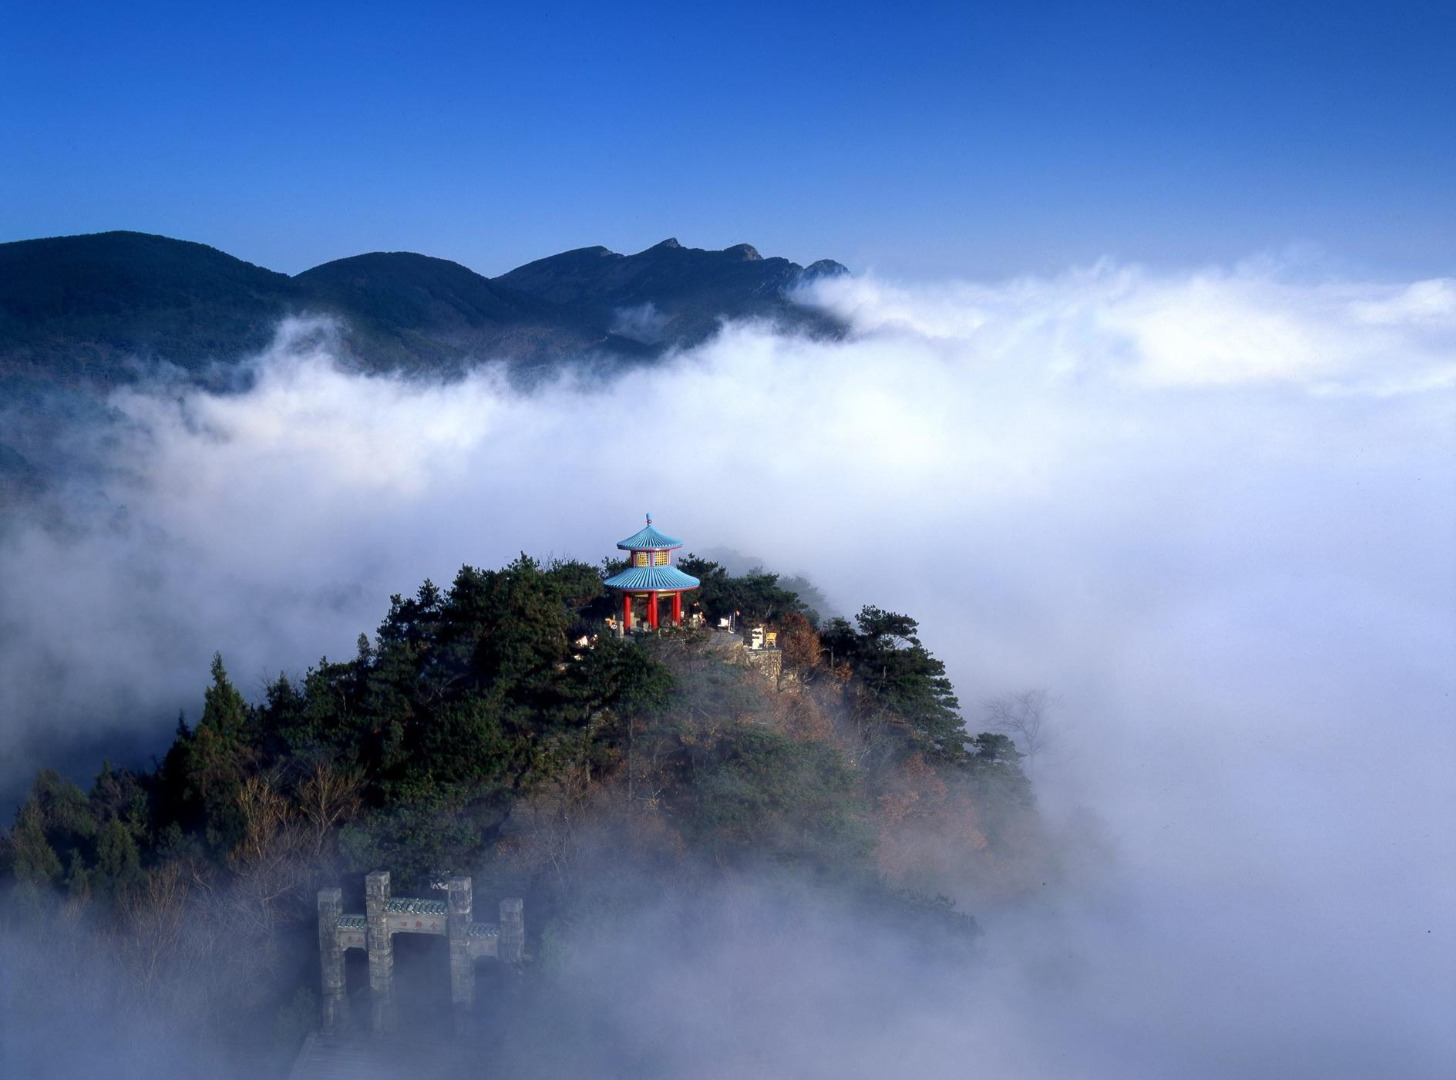 Picture from globeimages. Mount Lu or Lushan (simplified Chinese: 庐山; traditional Chinese: 廬山; pinyin: Lúshān, Gan: Lu-san), also known as Kuanglu (匡庐) in ancient times, is situated in the northern part of Jiangxi province in southeastern China, and is one of the most renowned mountains in the country. The oval-shaped mountains are about 25 km long and 10 km wide, and neighbors Jiujiang city and the Yangtze River to the north, Nanchang city to the south, and Poyang Lake to the east. Its highest point is Dahanyang Peak (大汉阳峰), reaching 1,474 m above sea level, and is one of the hundreds of steep peaks that towers above a sea of clouds that encompass the mountains for almost 200 days out of the year. Mount Lu is known for its grandeur, steepness, and beauty, and is part of Lushan National Park, a UNESCO World Heritage Site since 1996, and a prominent tourist attraction, especially during the summer months when the weather is cooler.  Lushan was a summer resort for Western missionaries in China. Absalom Sydenstricker, the father of Pearl Buck was one of the first five missionaries to acquire property in the Kuling Estate on the mountain.